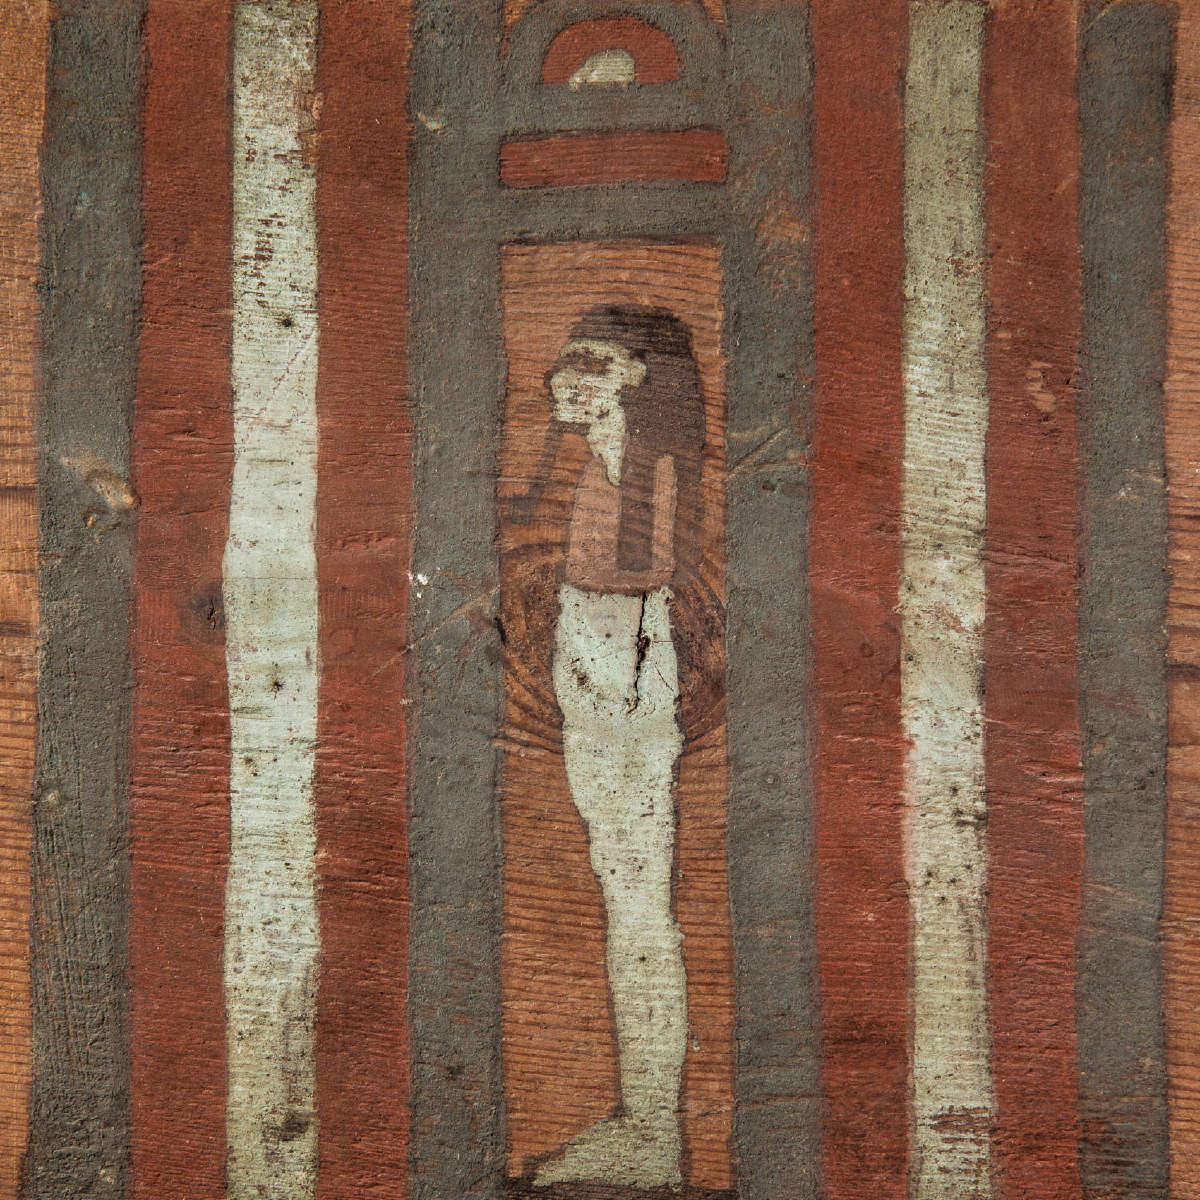 Photo of WOODEN PANEL OF AN INNER COFFIN